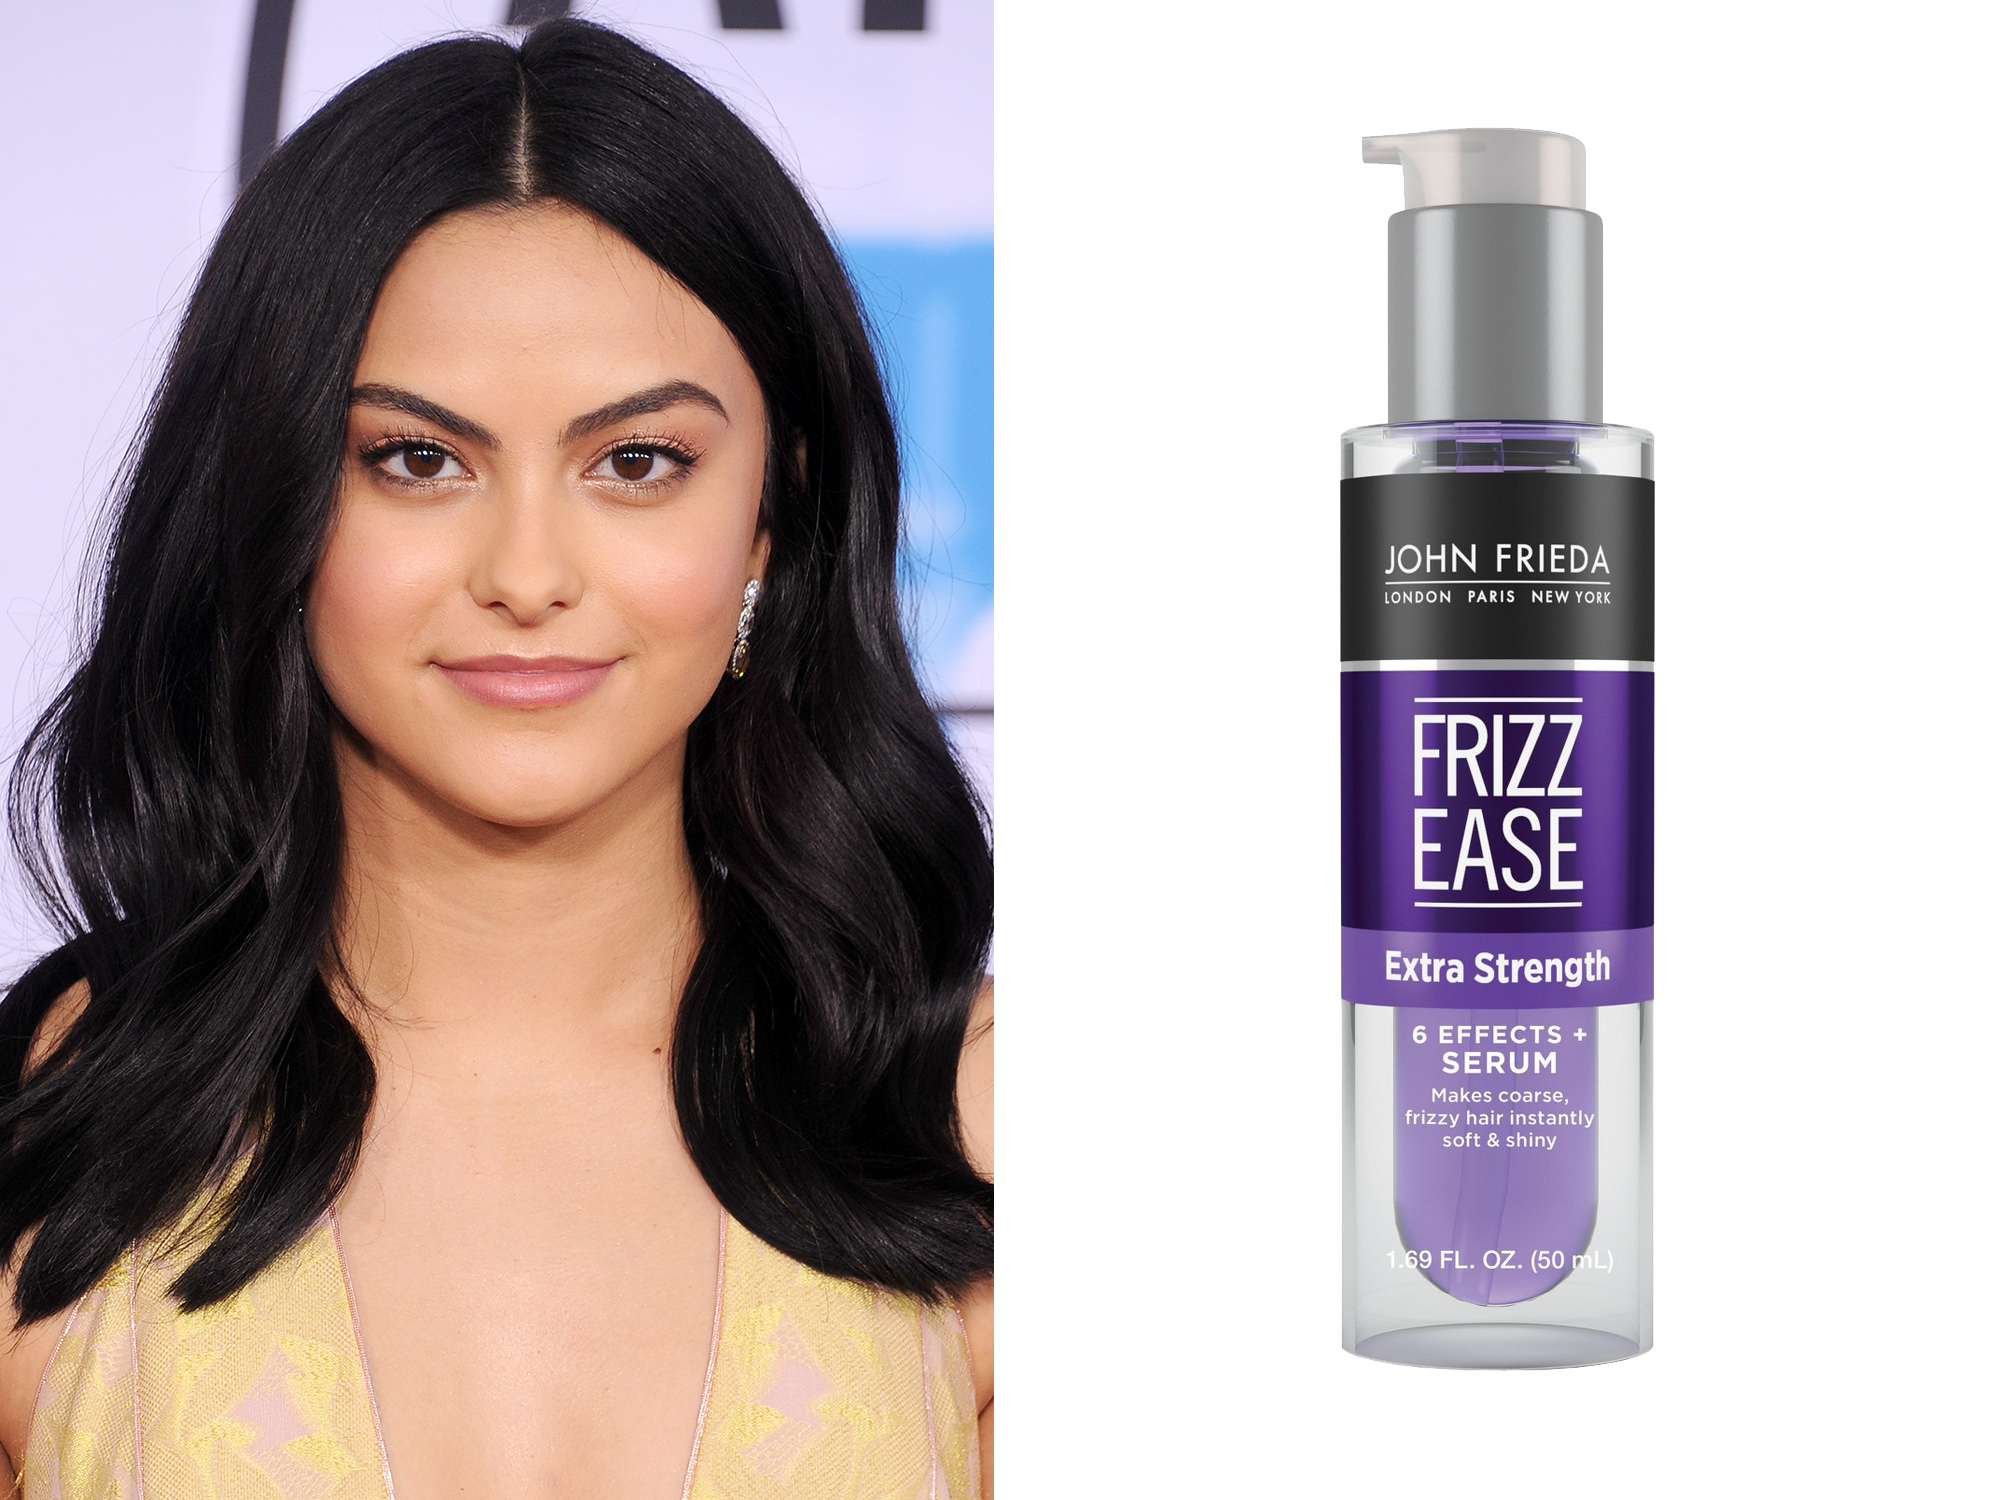 Camila Mendes: John Frieda's Frizz Ease Extra Strength Serum